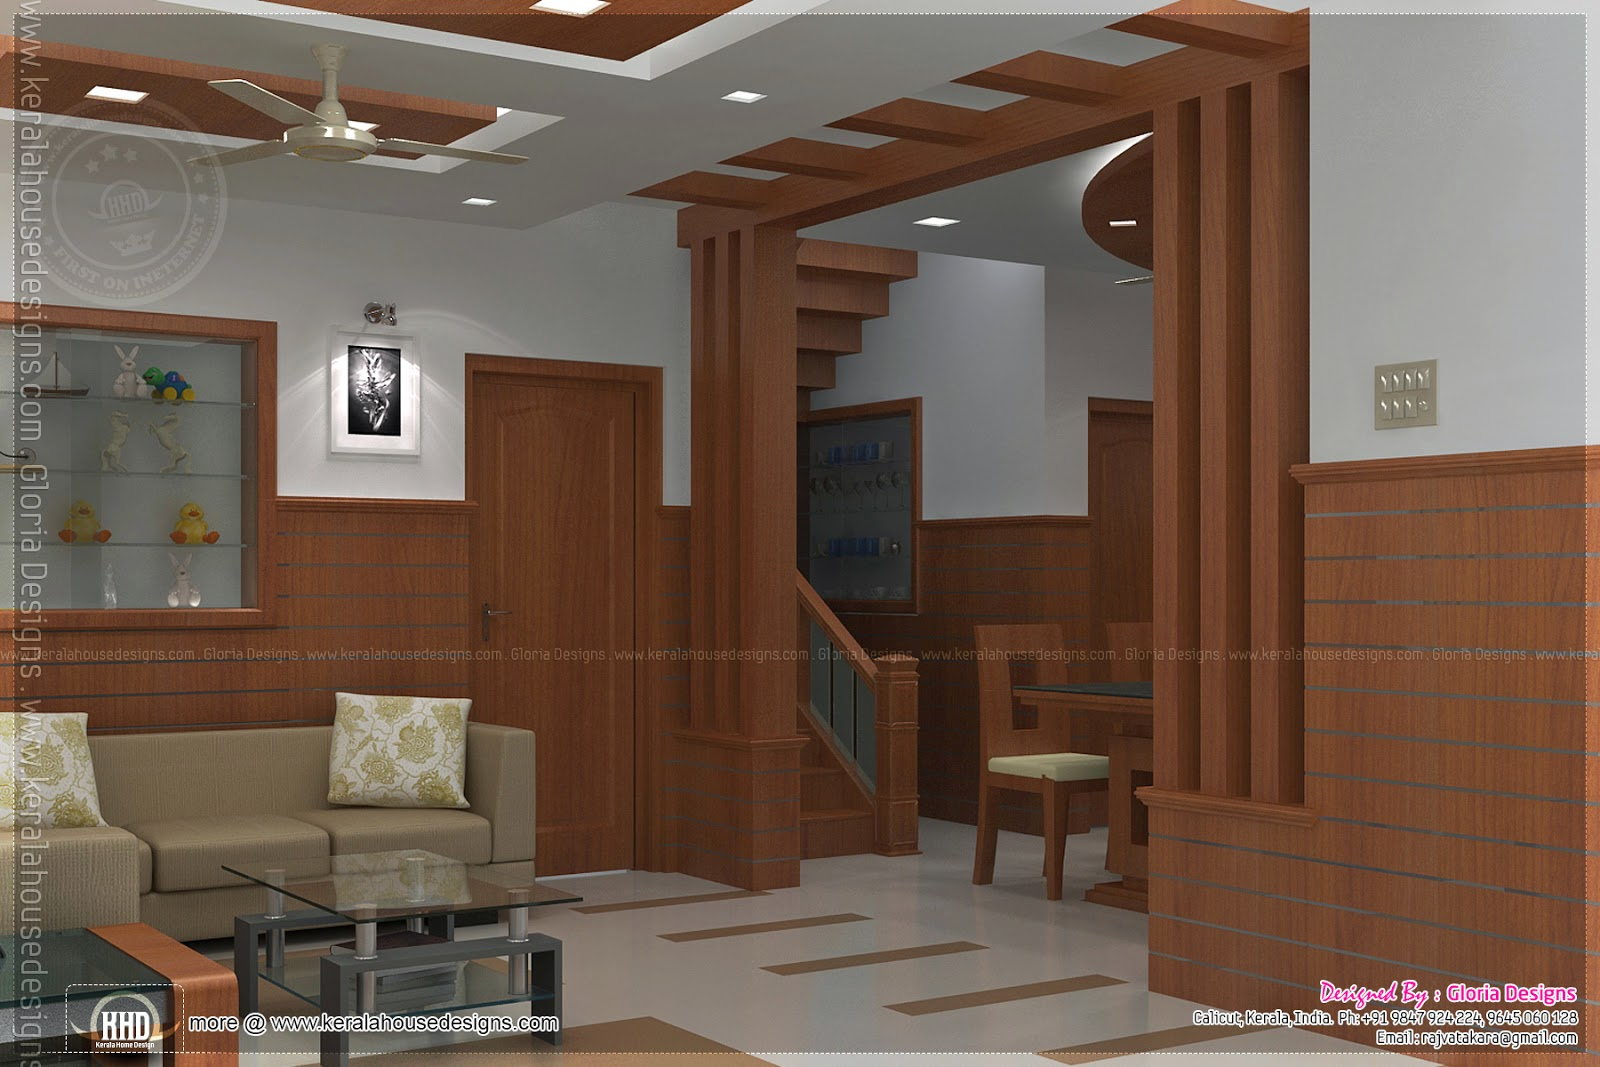 Home interior design kerala for Kerala house living room interior design